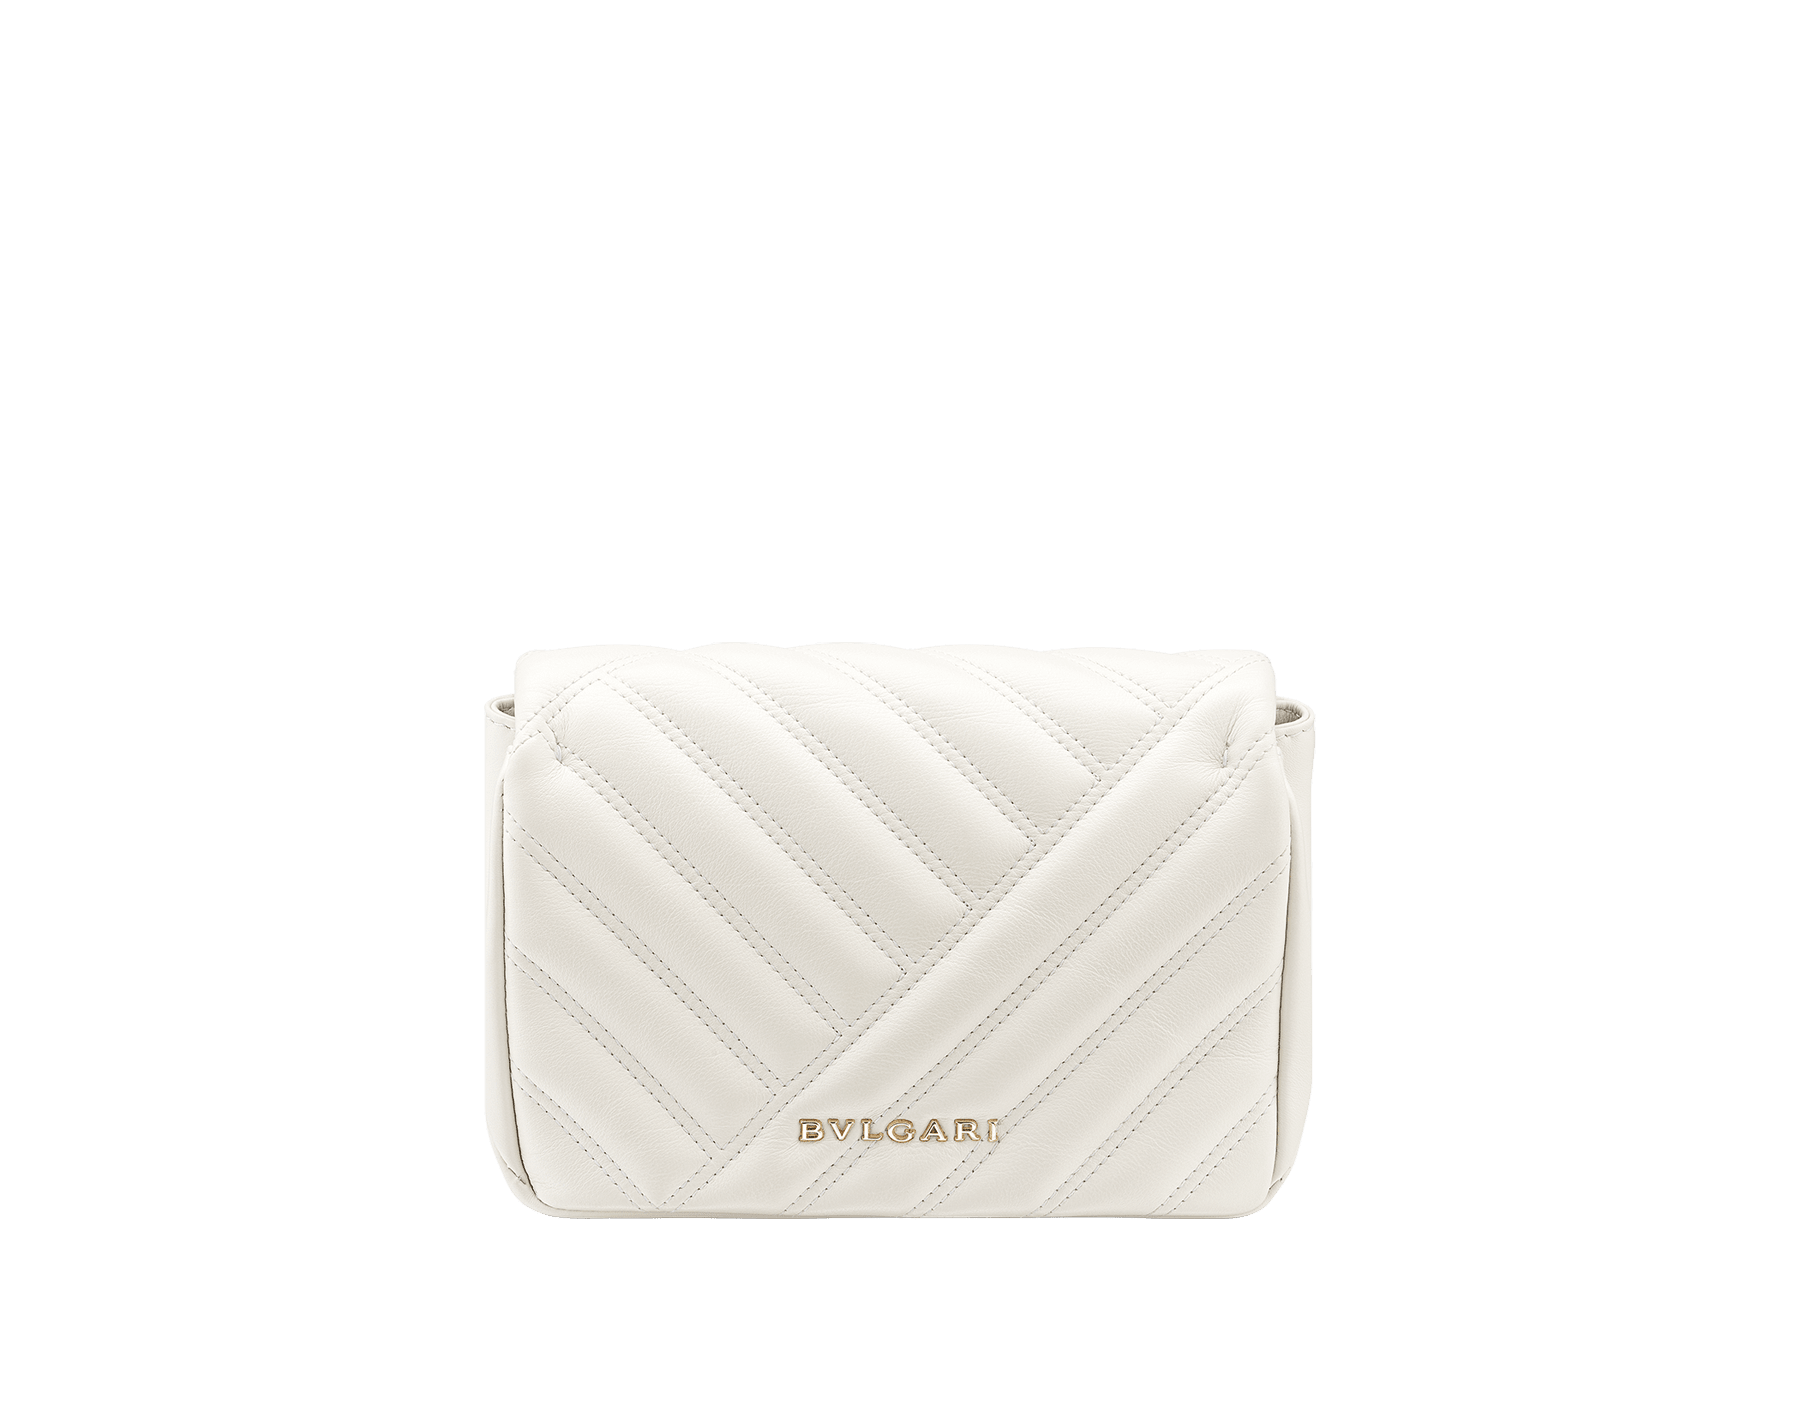 Serpenti Cabochon micro bag in soft matelassé white agate calf leather, with a graphic motif. Brass light gold plated tempting snake head closure in black and white agate enamel and black onyx eyes. 288760 image 3